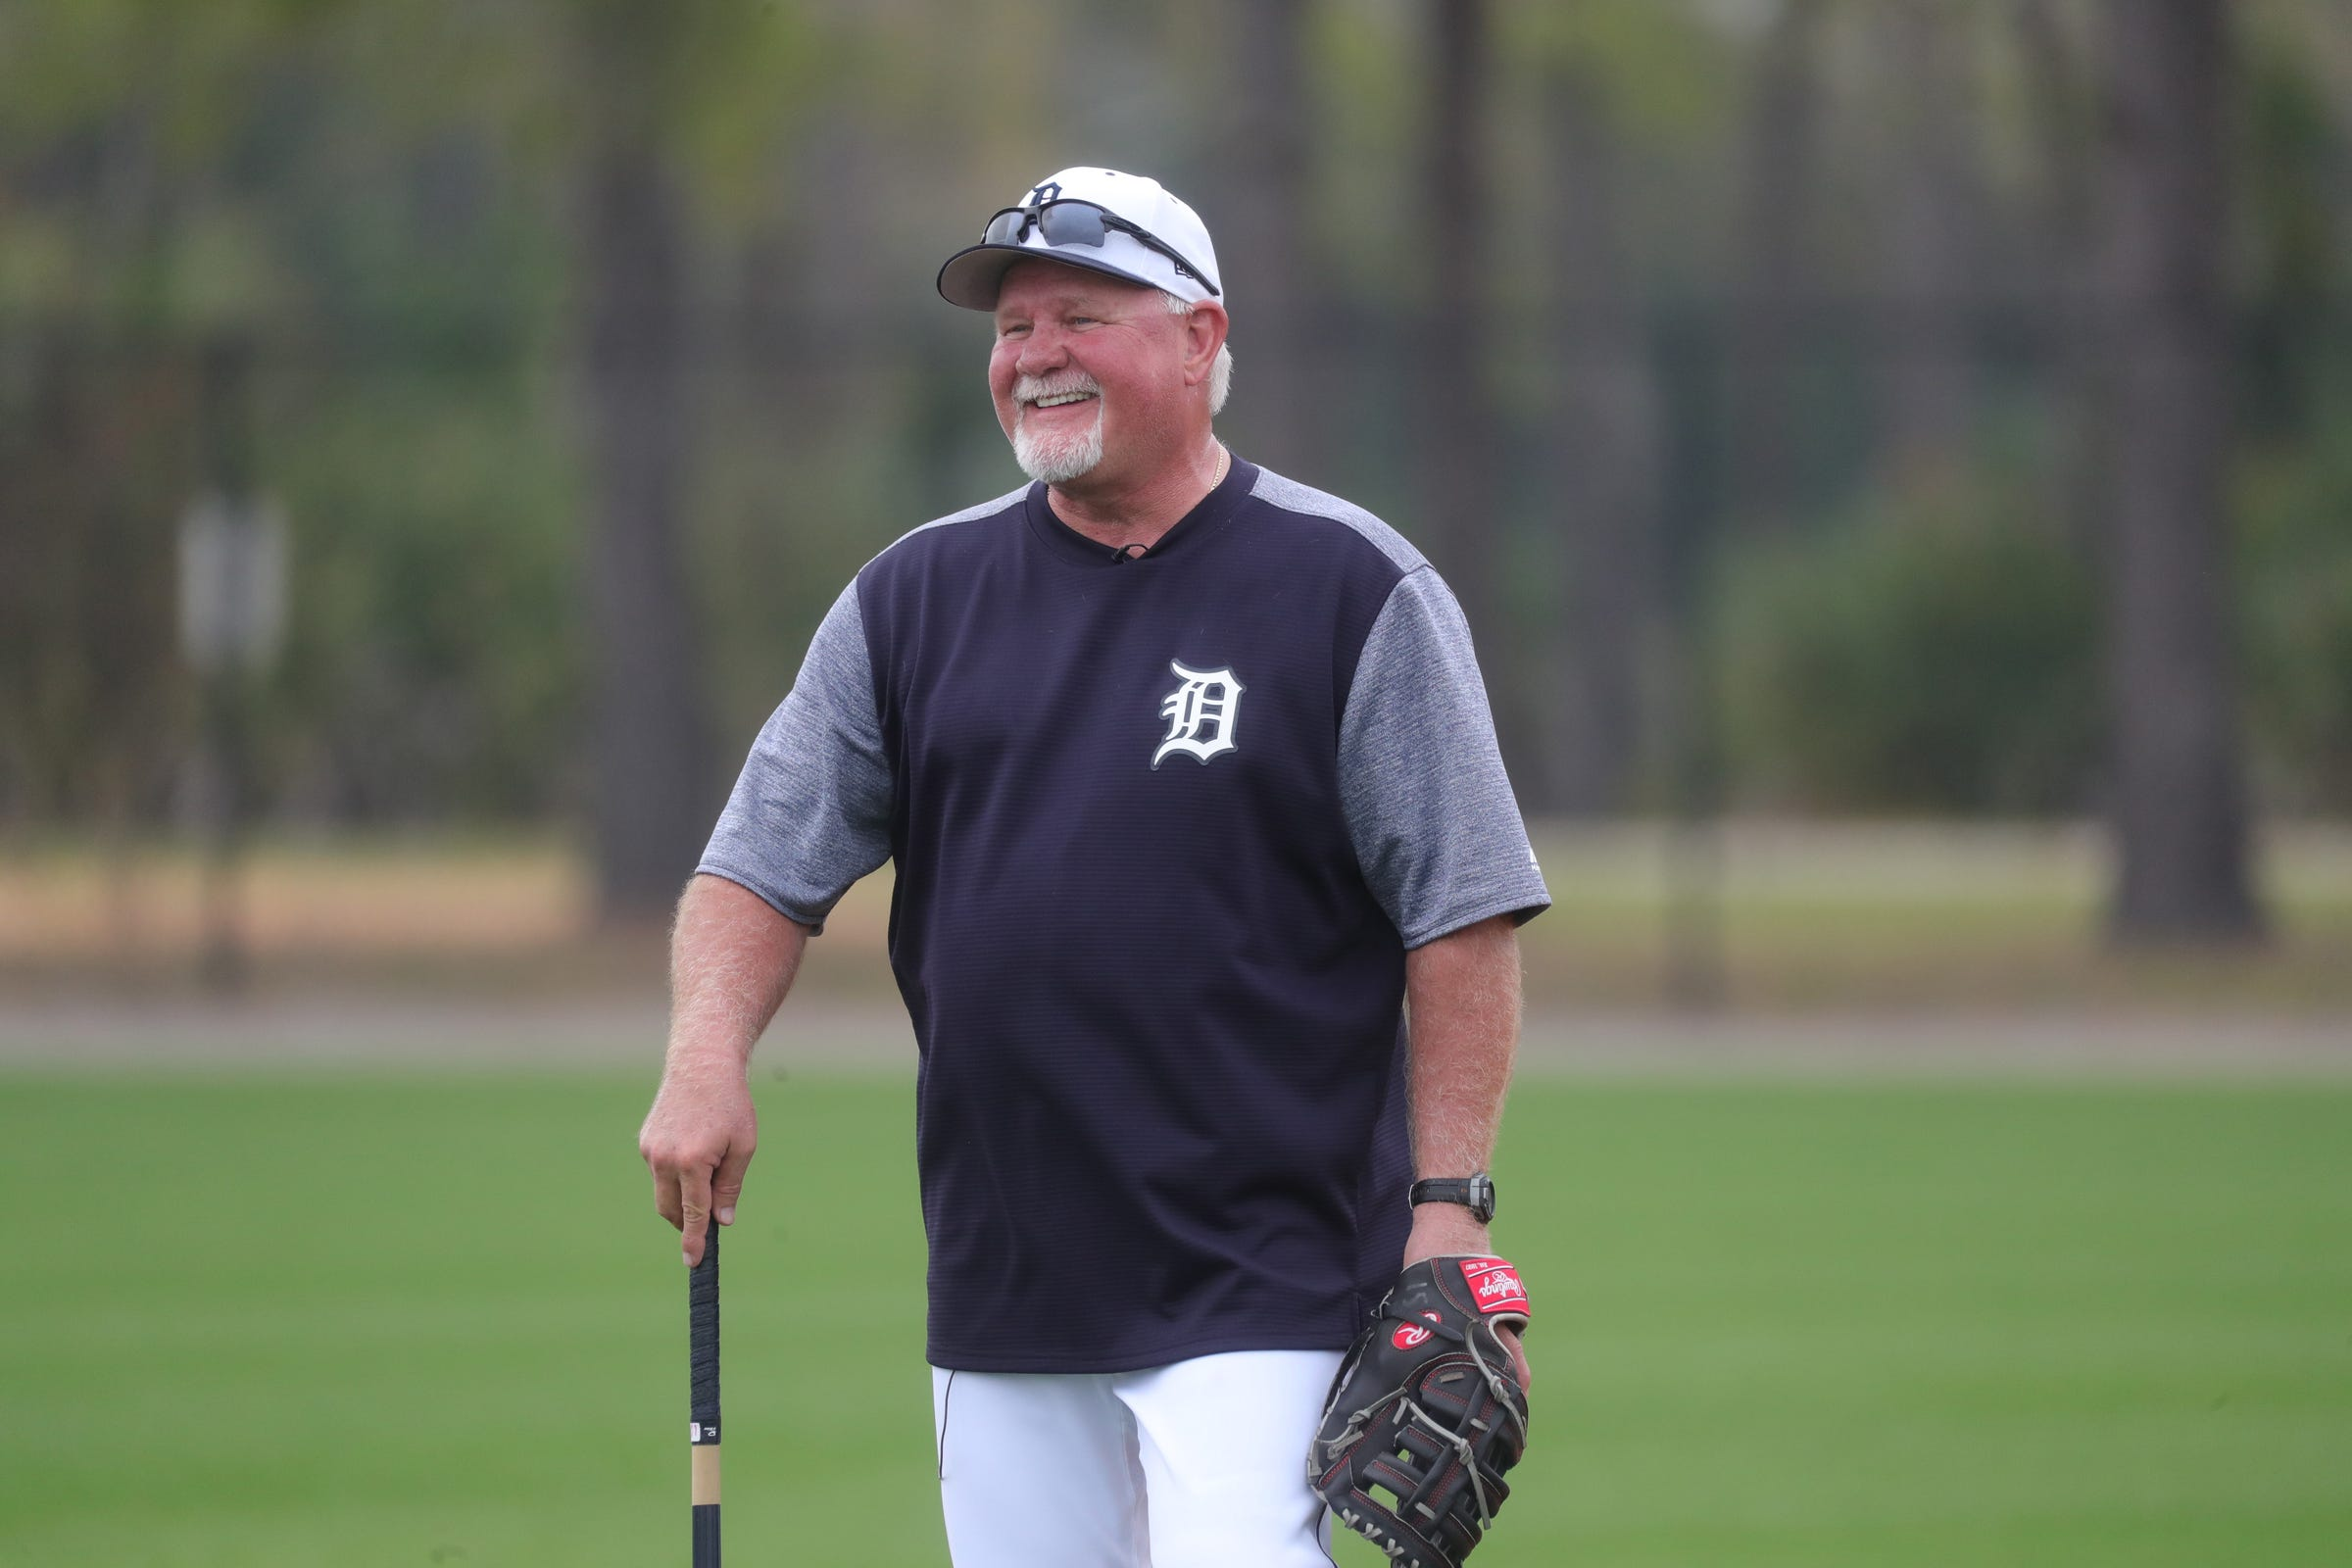 Tigers Home Opener 2020.Best Moments From Detroit Tigers First Full Team Workout In Spring Training